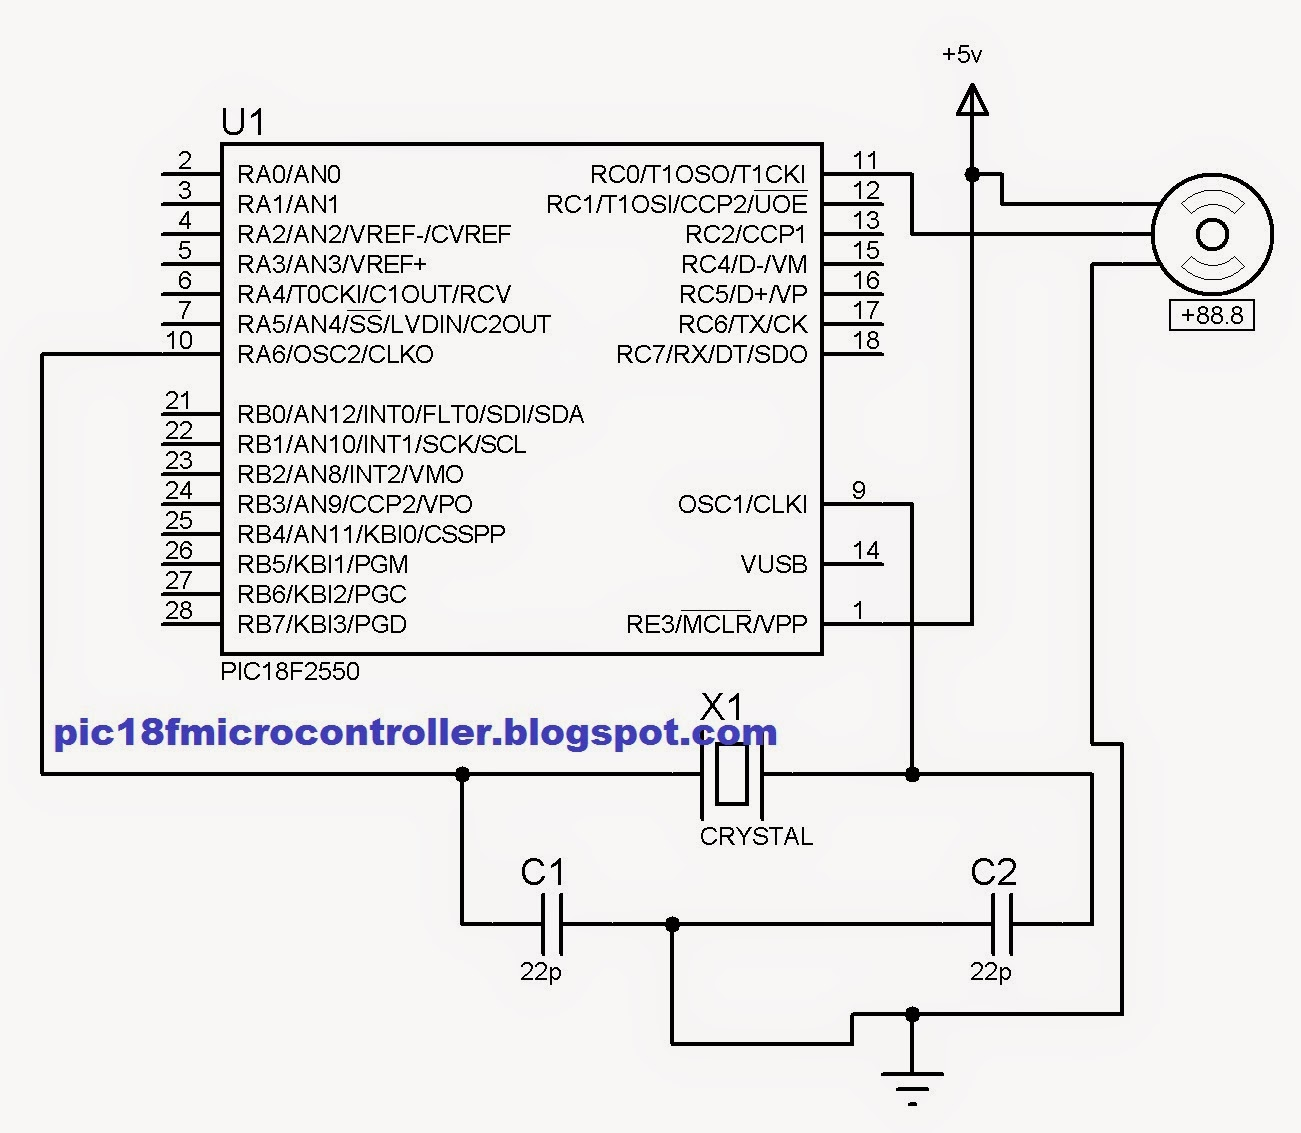 Servo Motor Interfacing With Pic Microcontroller Pic18f2550 In Circuit1 Beginners Guide Avr Programming Proteus Step By